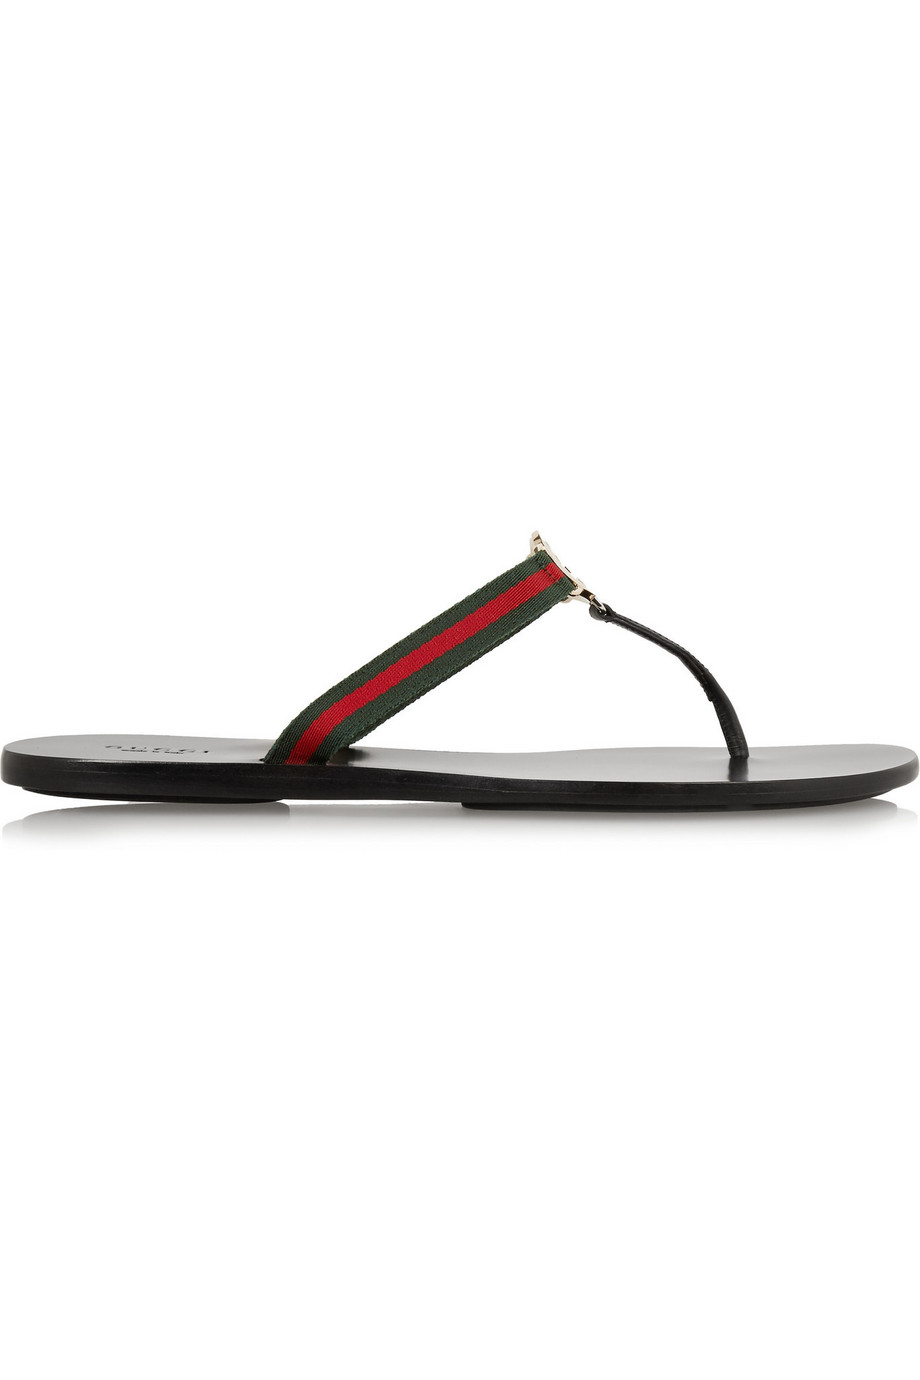 Gucci Leather and Grosgrain Sandals, Black, Women's US Size: 7, Size: 37.5